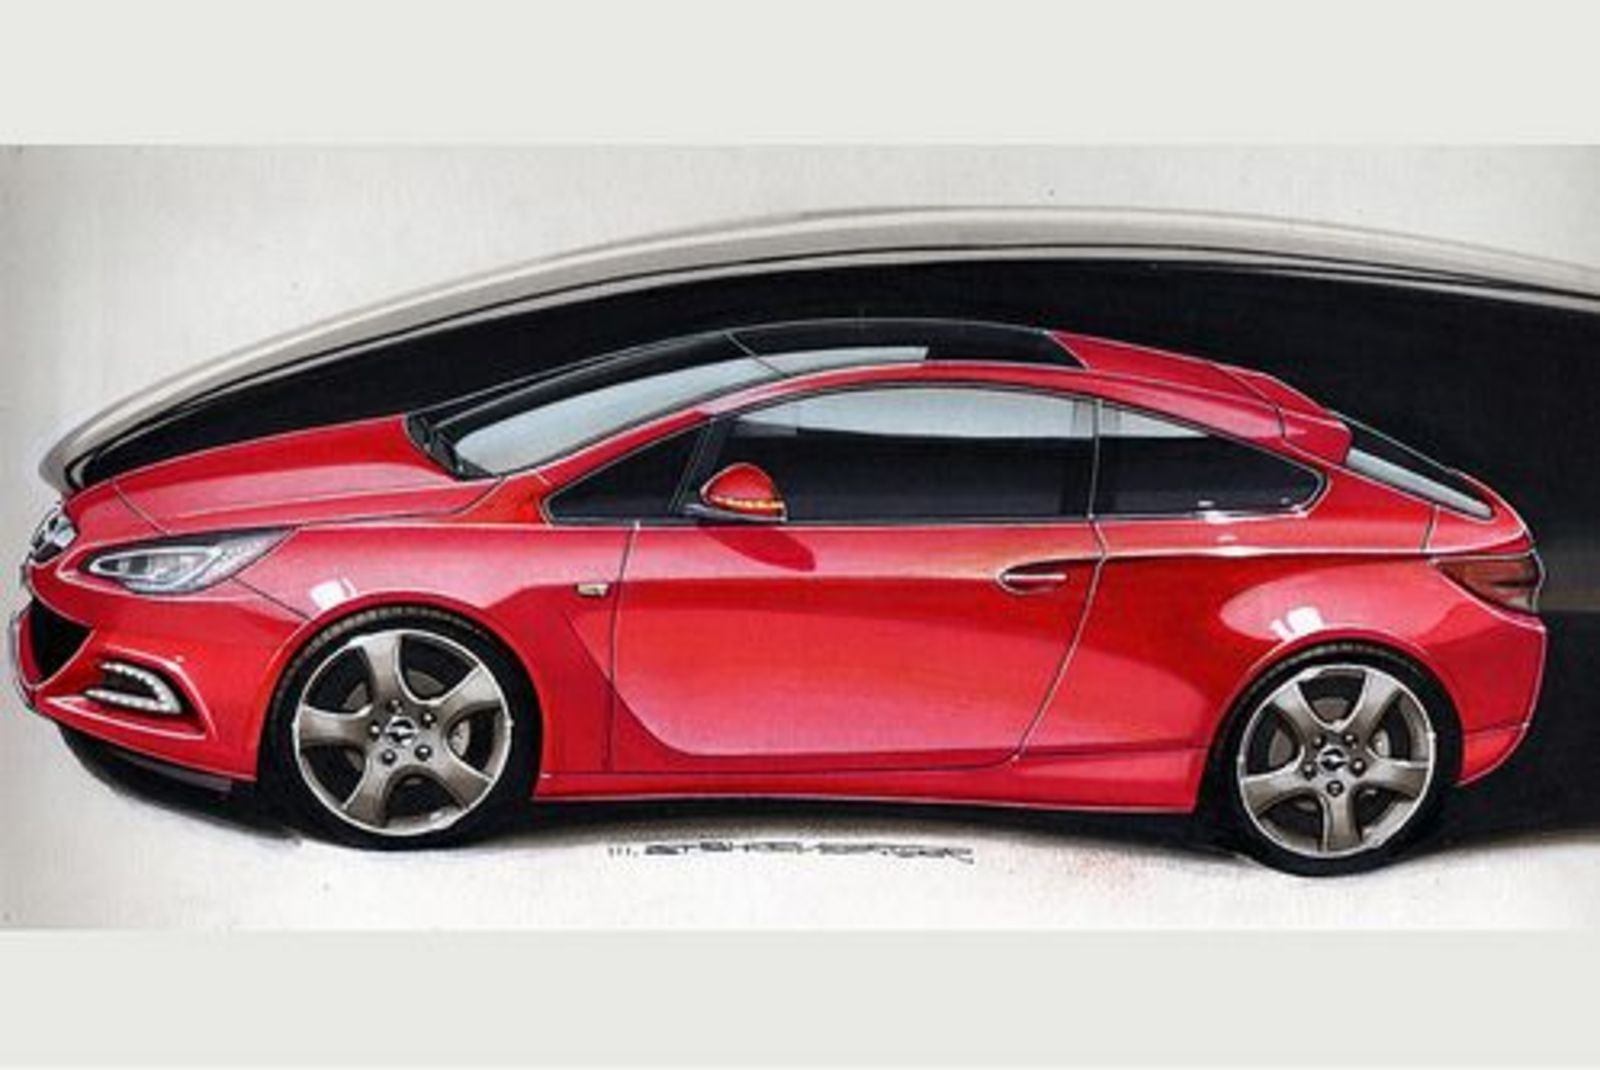 more details on the future opel astra sports coupe news top speed. Black Bedroom Furniture Sets. Home Design Ideas